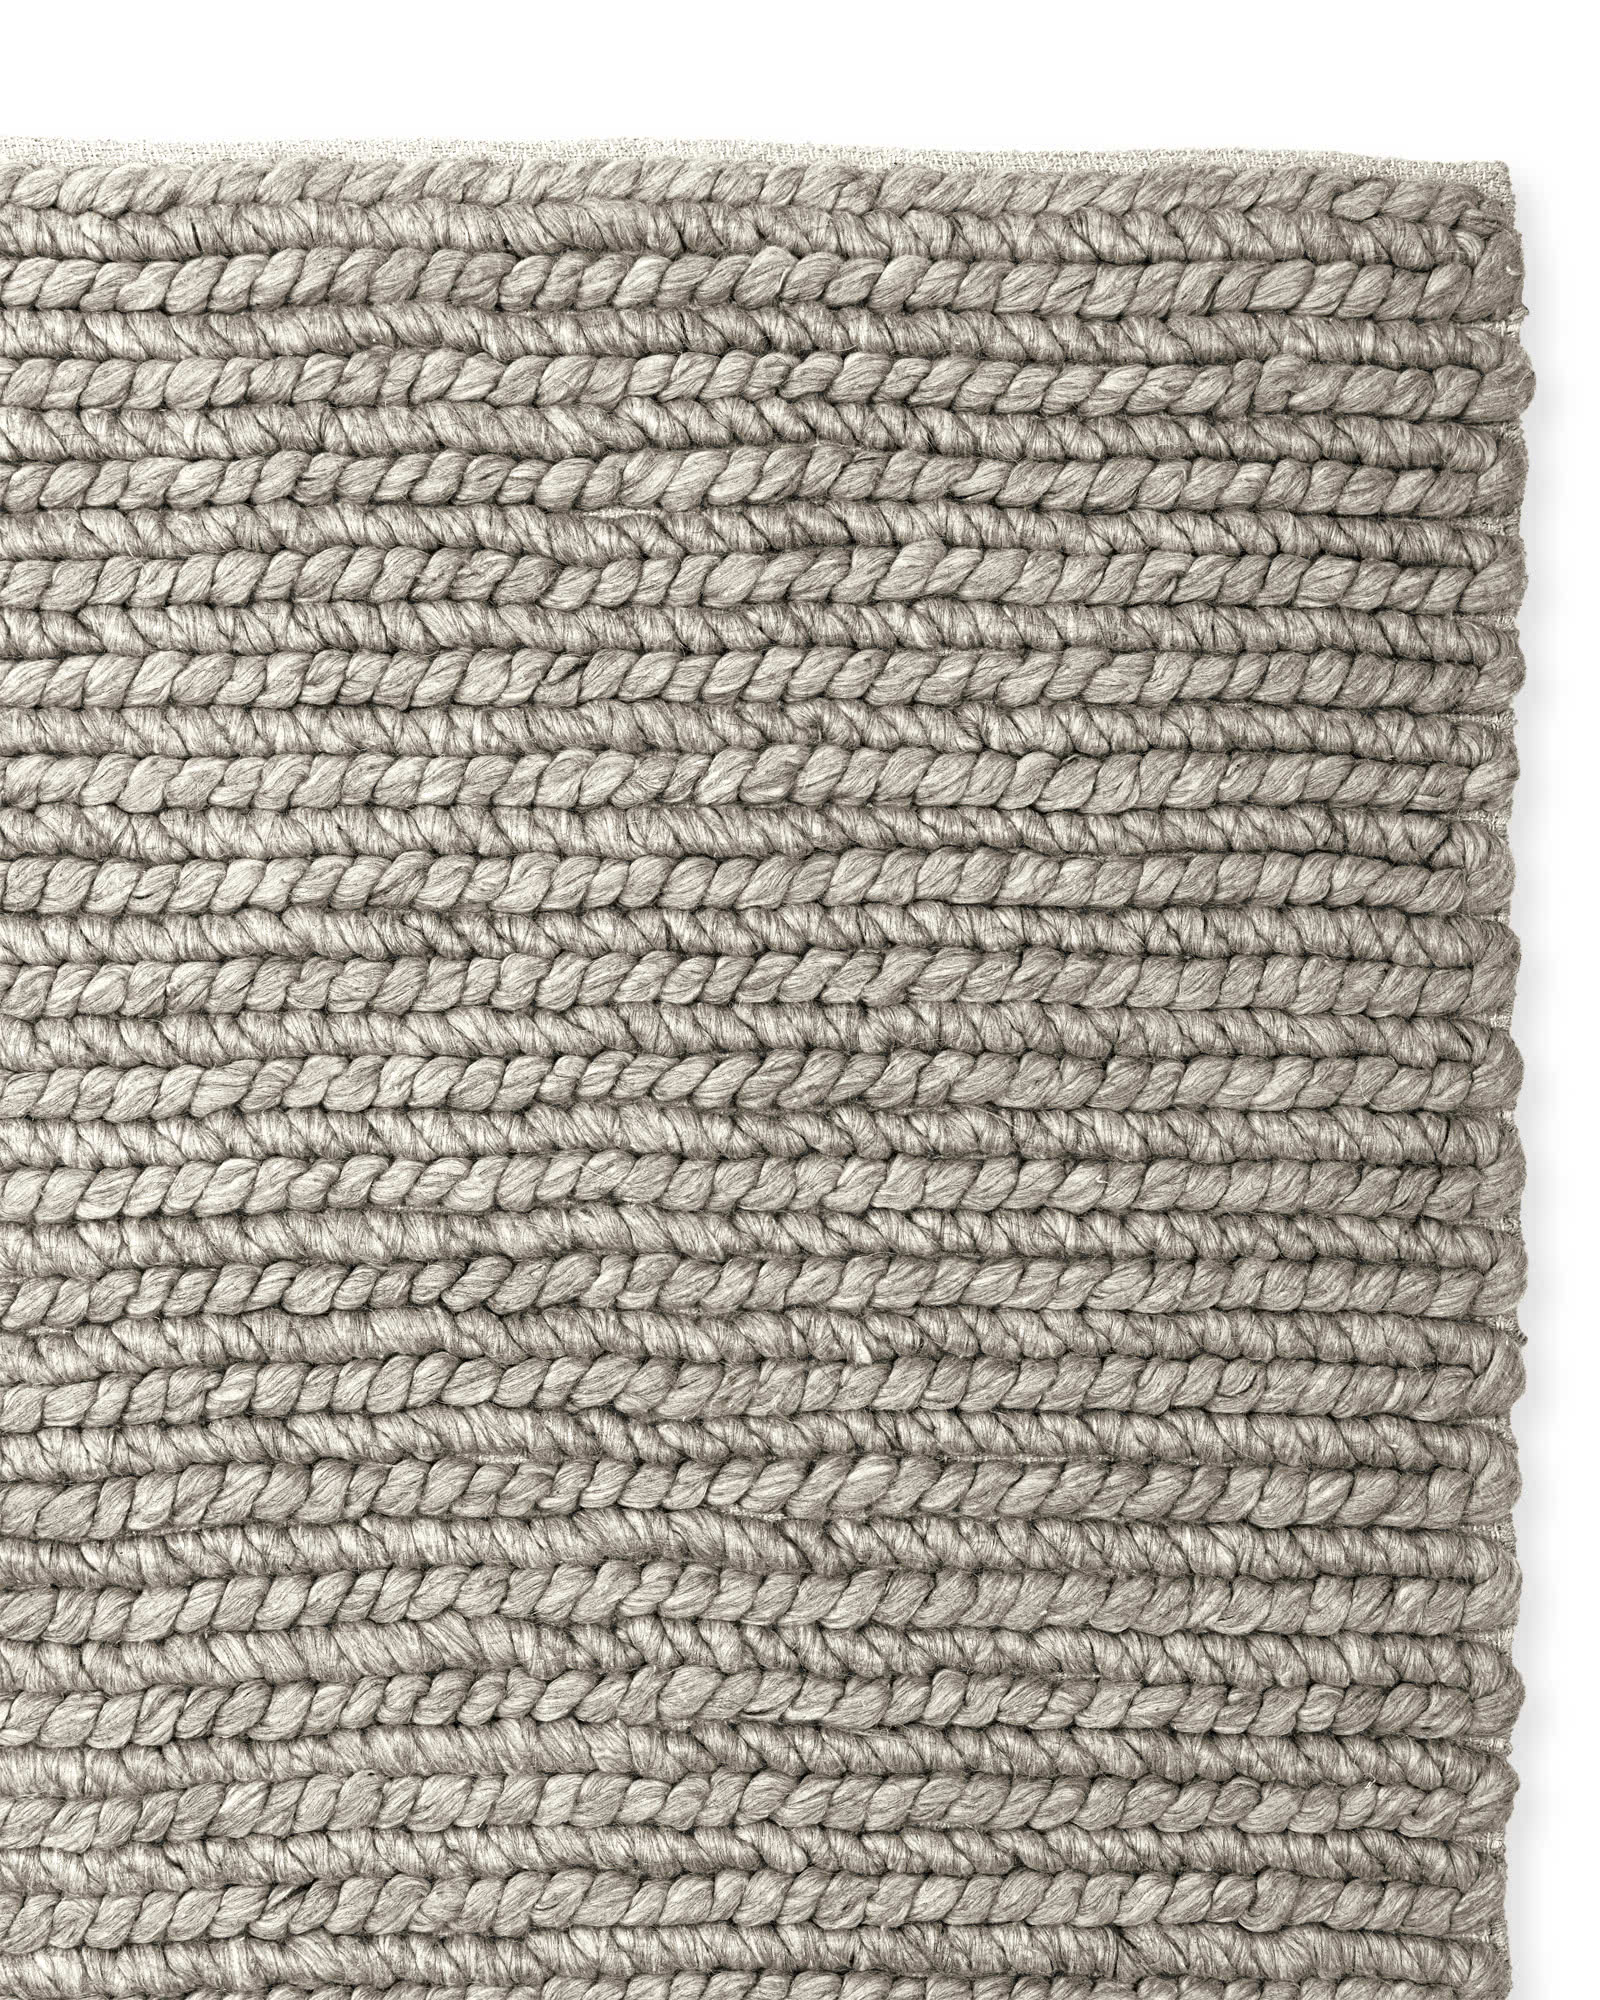 Braided Wool Rug, Heathered Grey